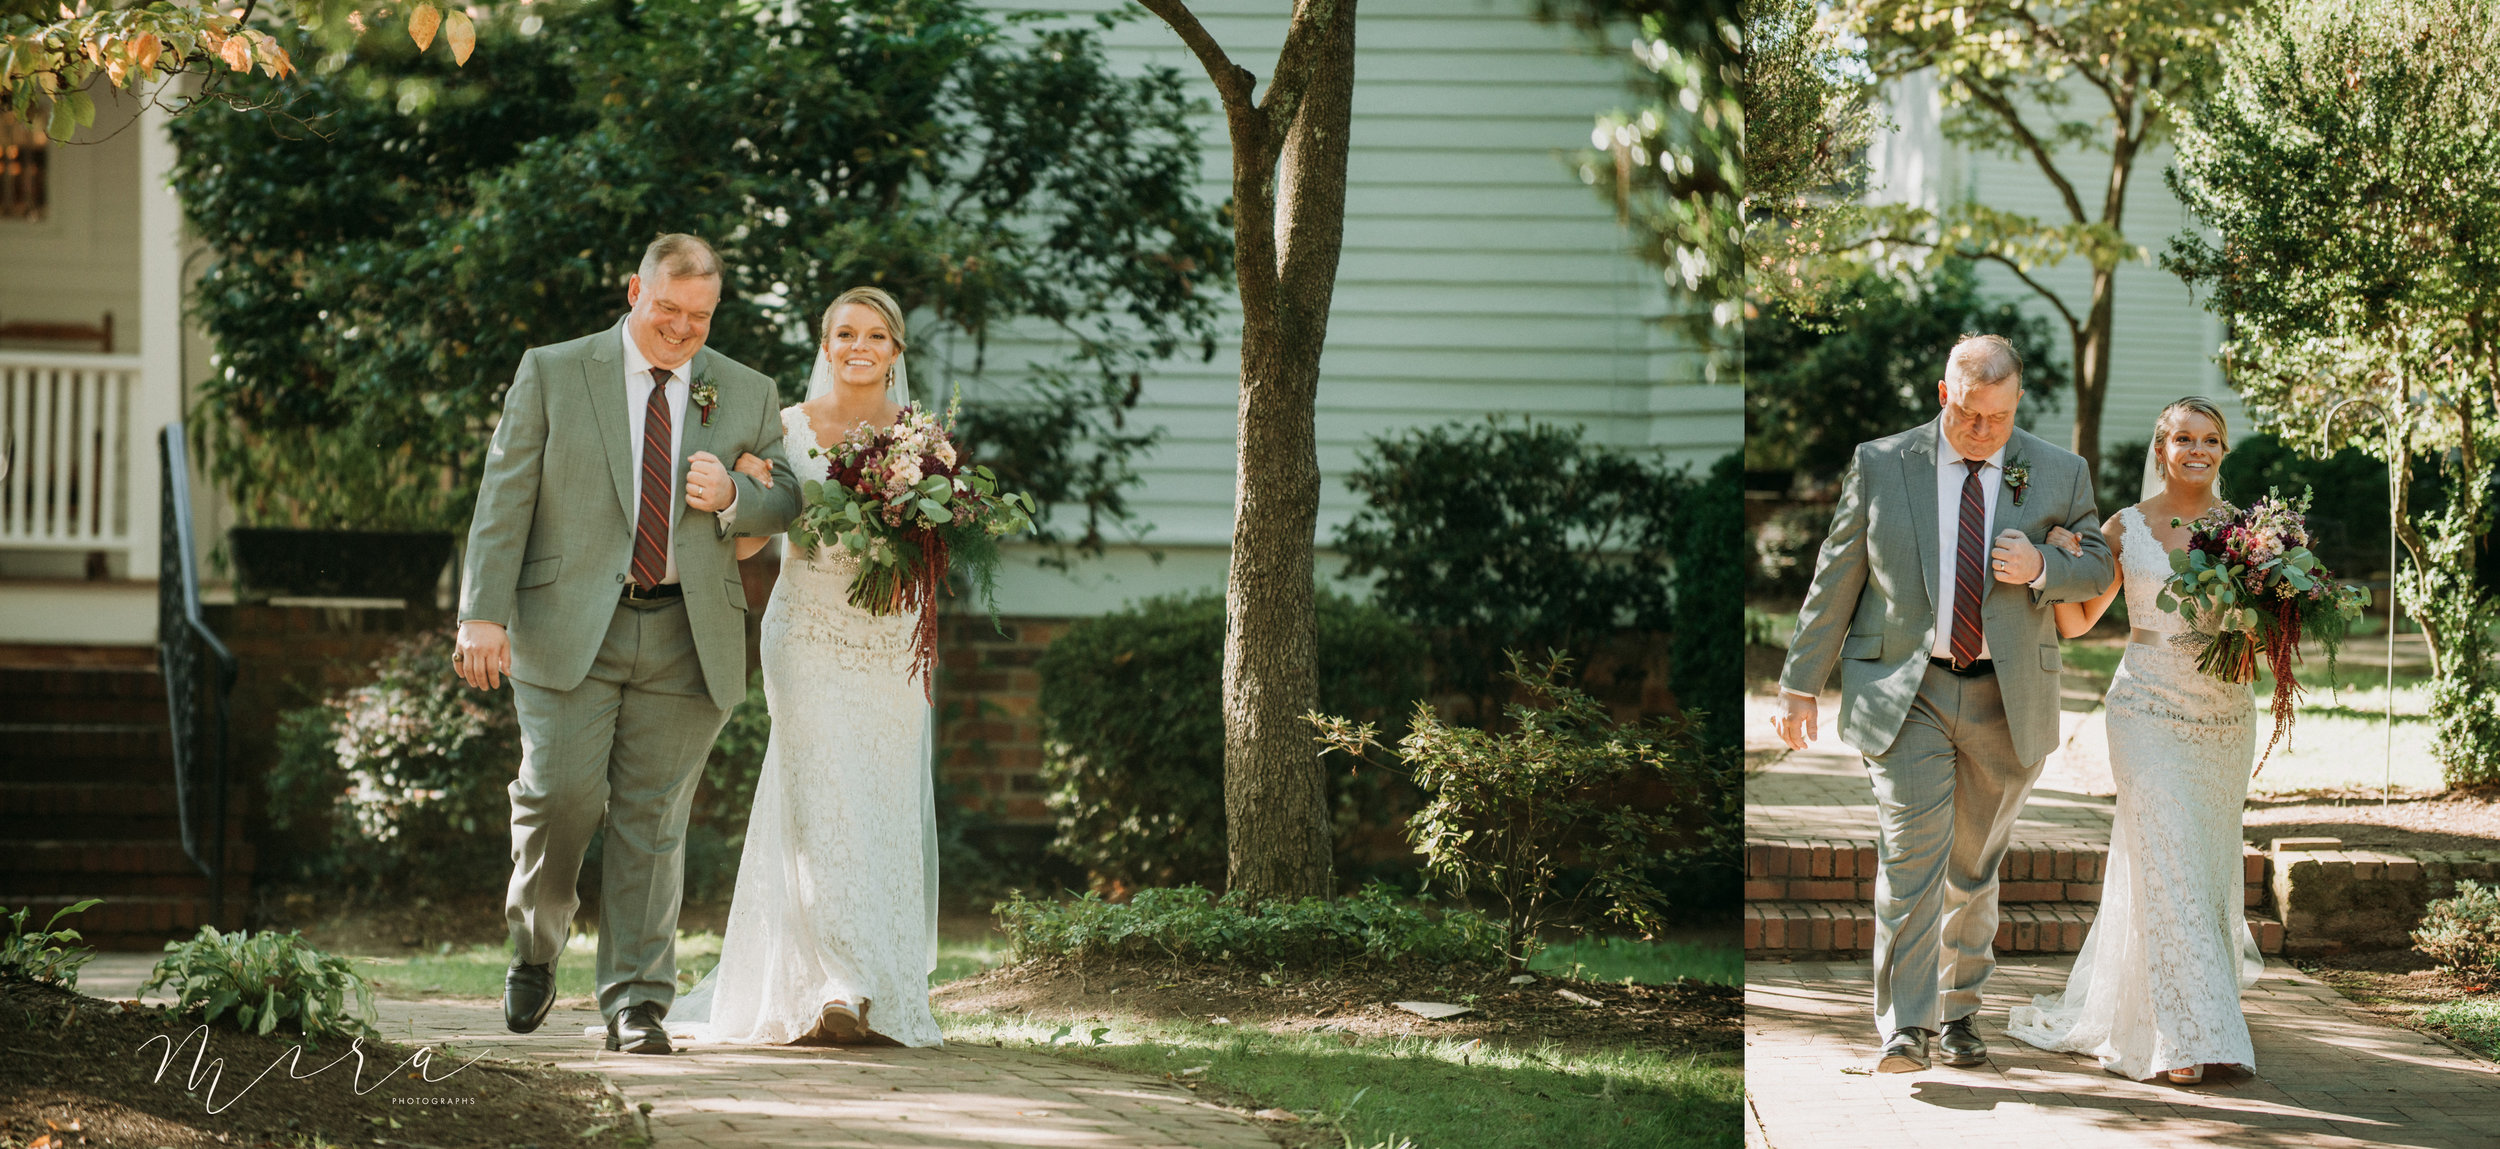 Ashlyn+HenningMarried22.jpg